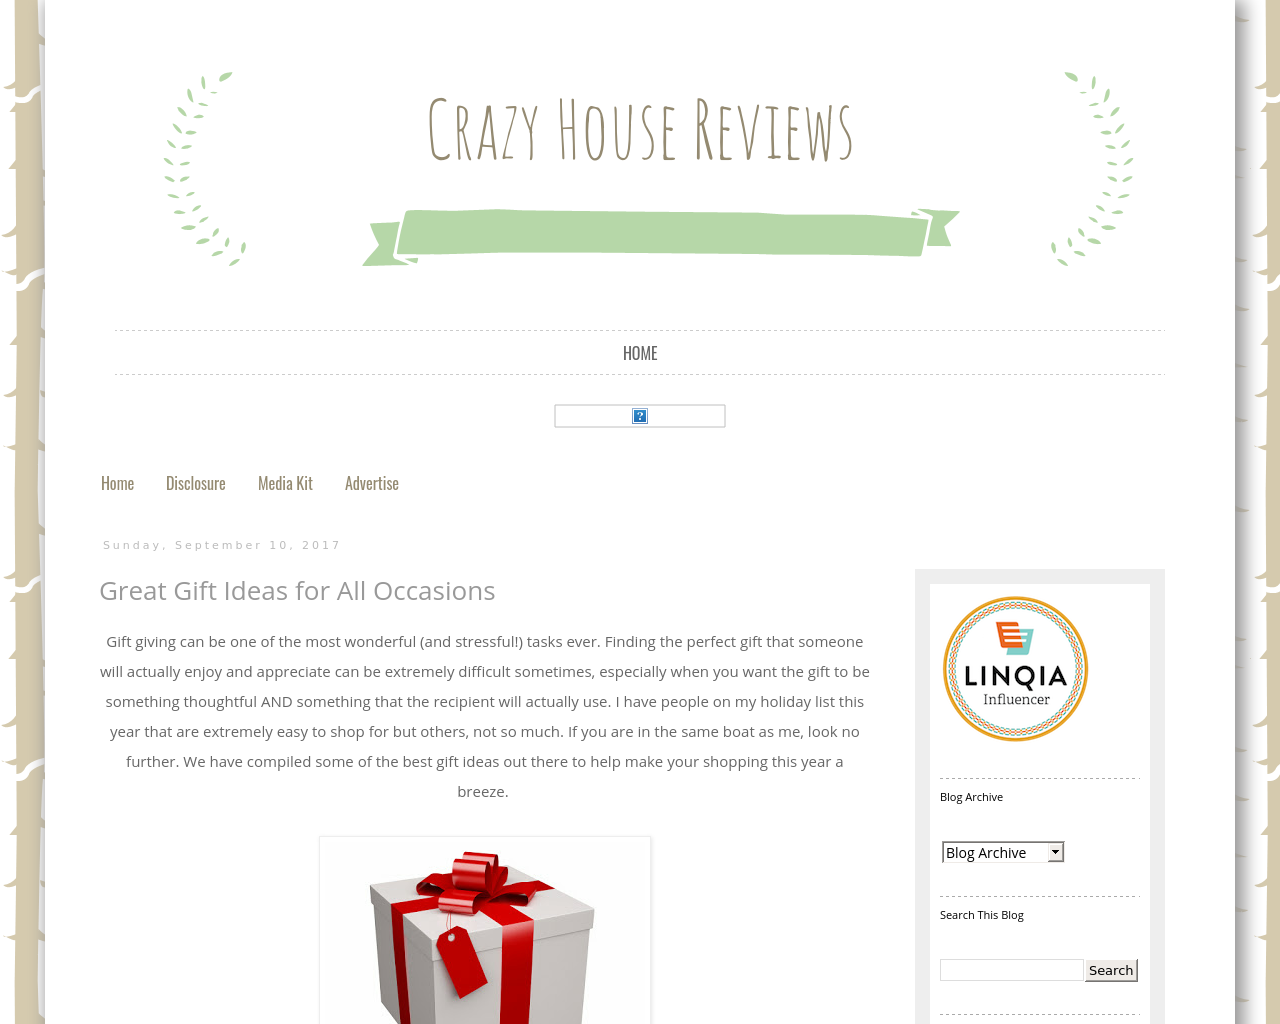 Crazy-House-Reviews-Advertising-Reviews-Pricing